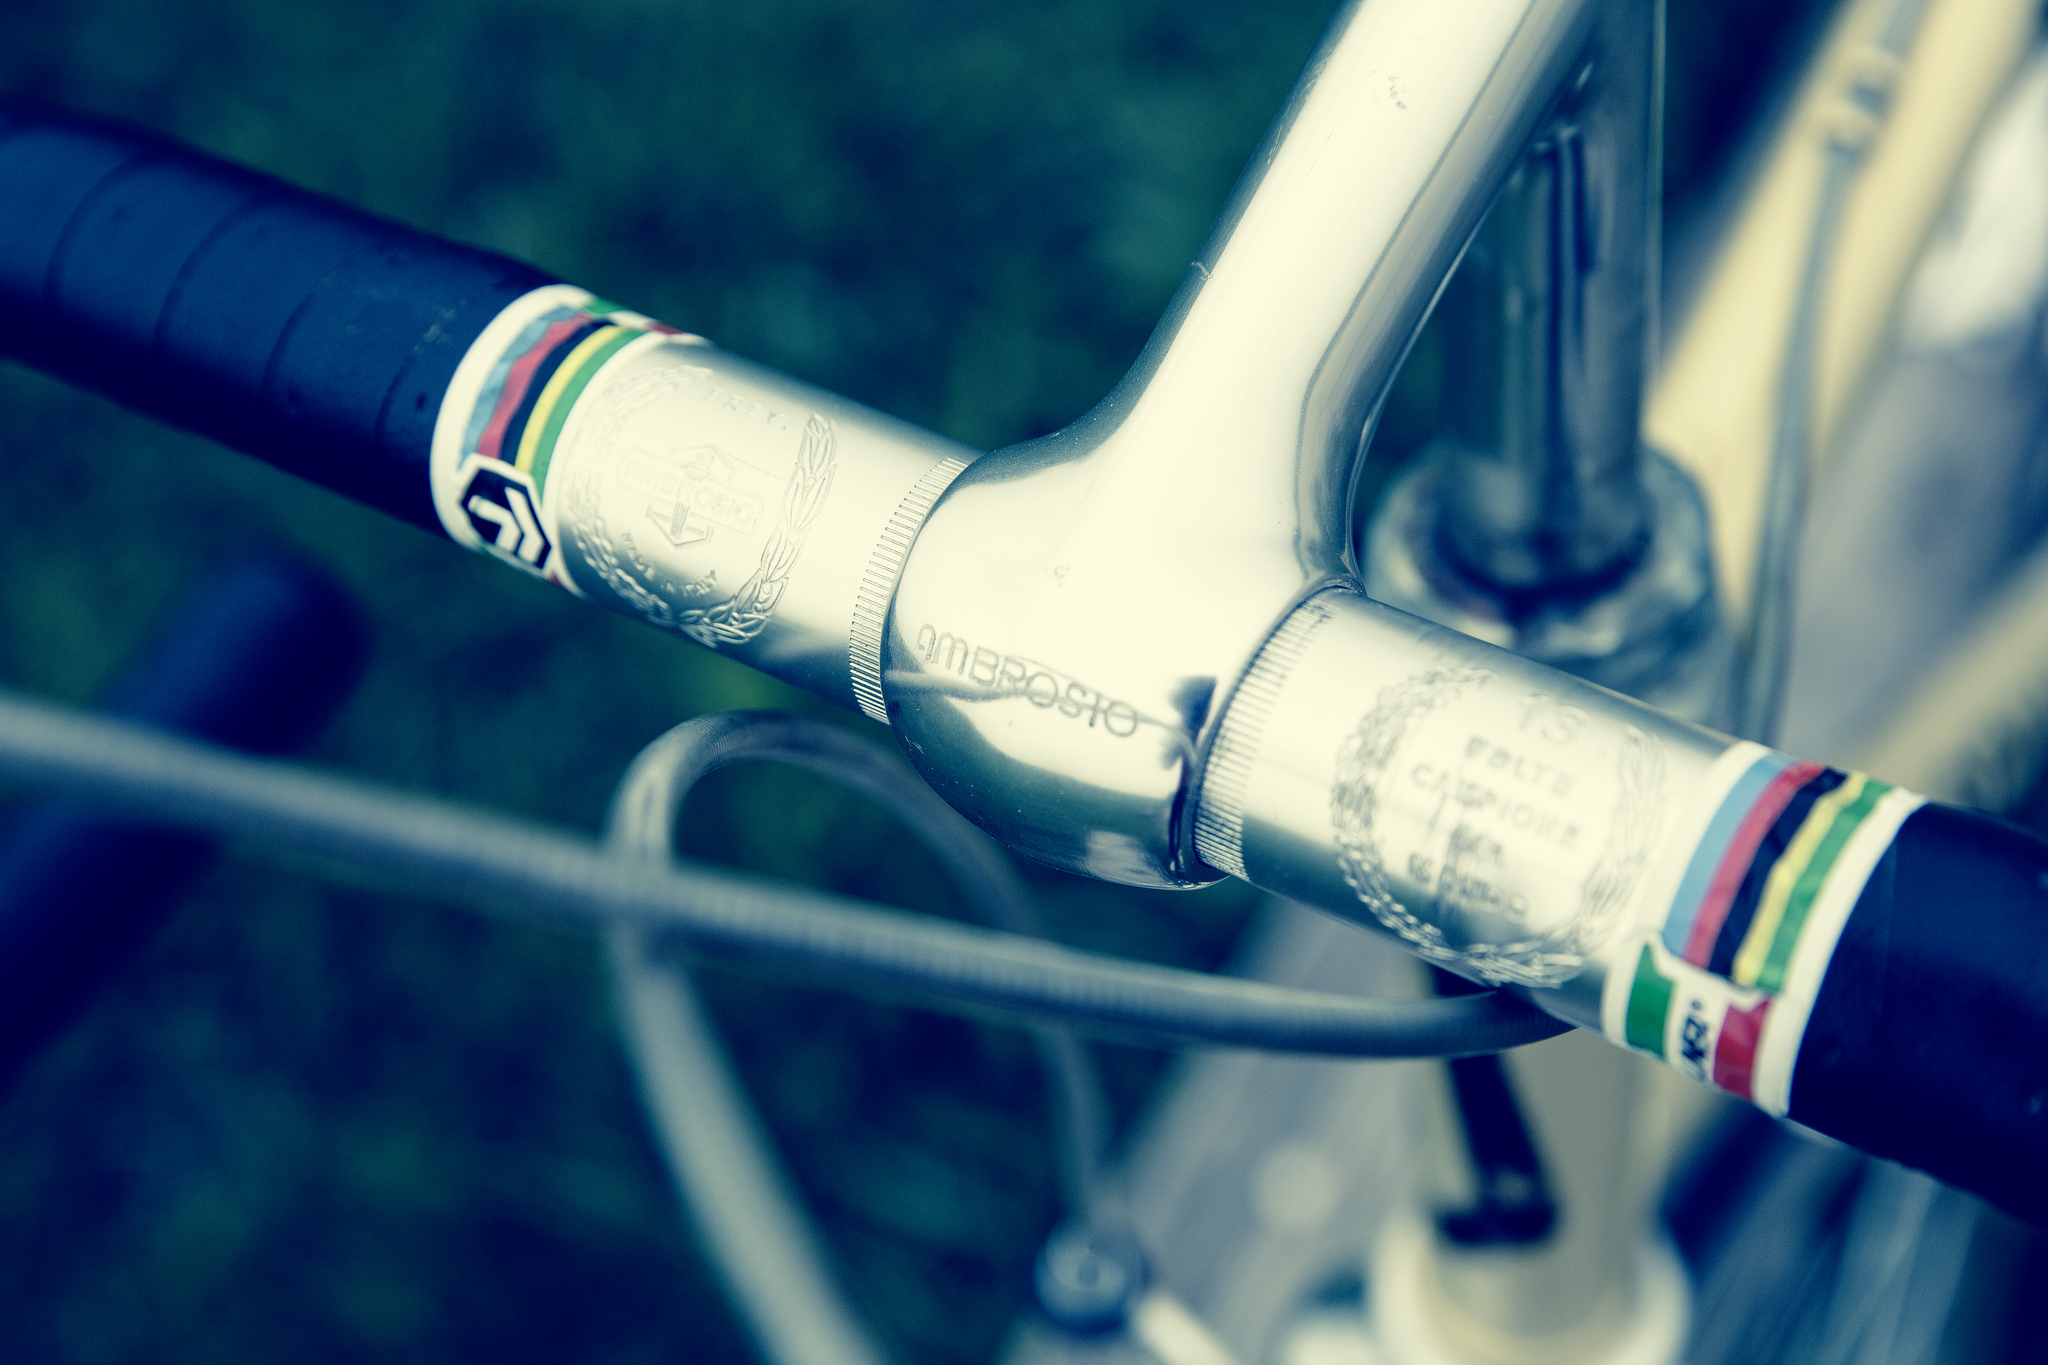 vintage racing bike| © Markus Spiske/flickr